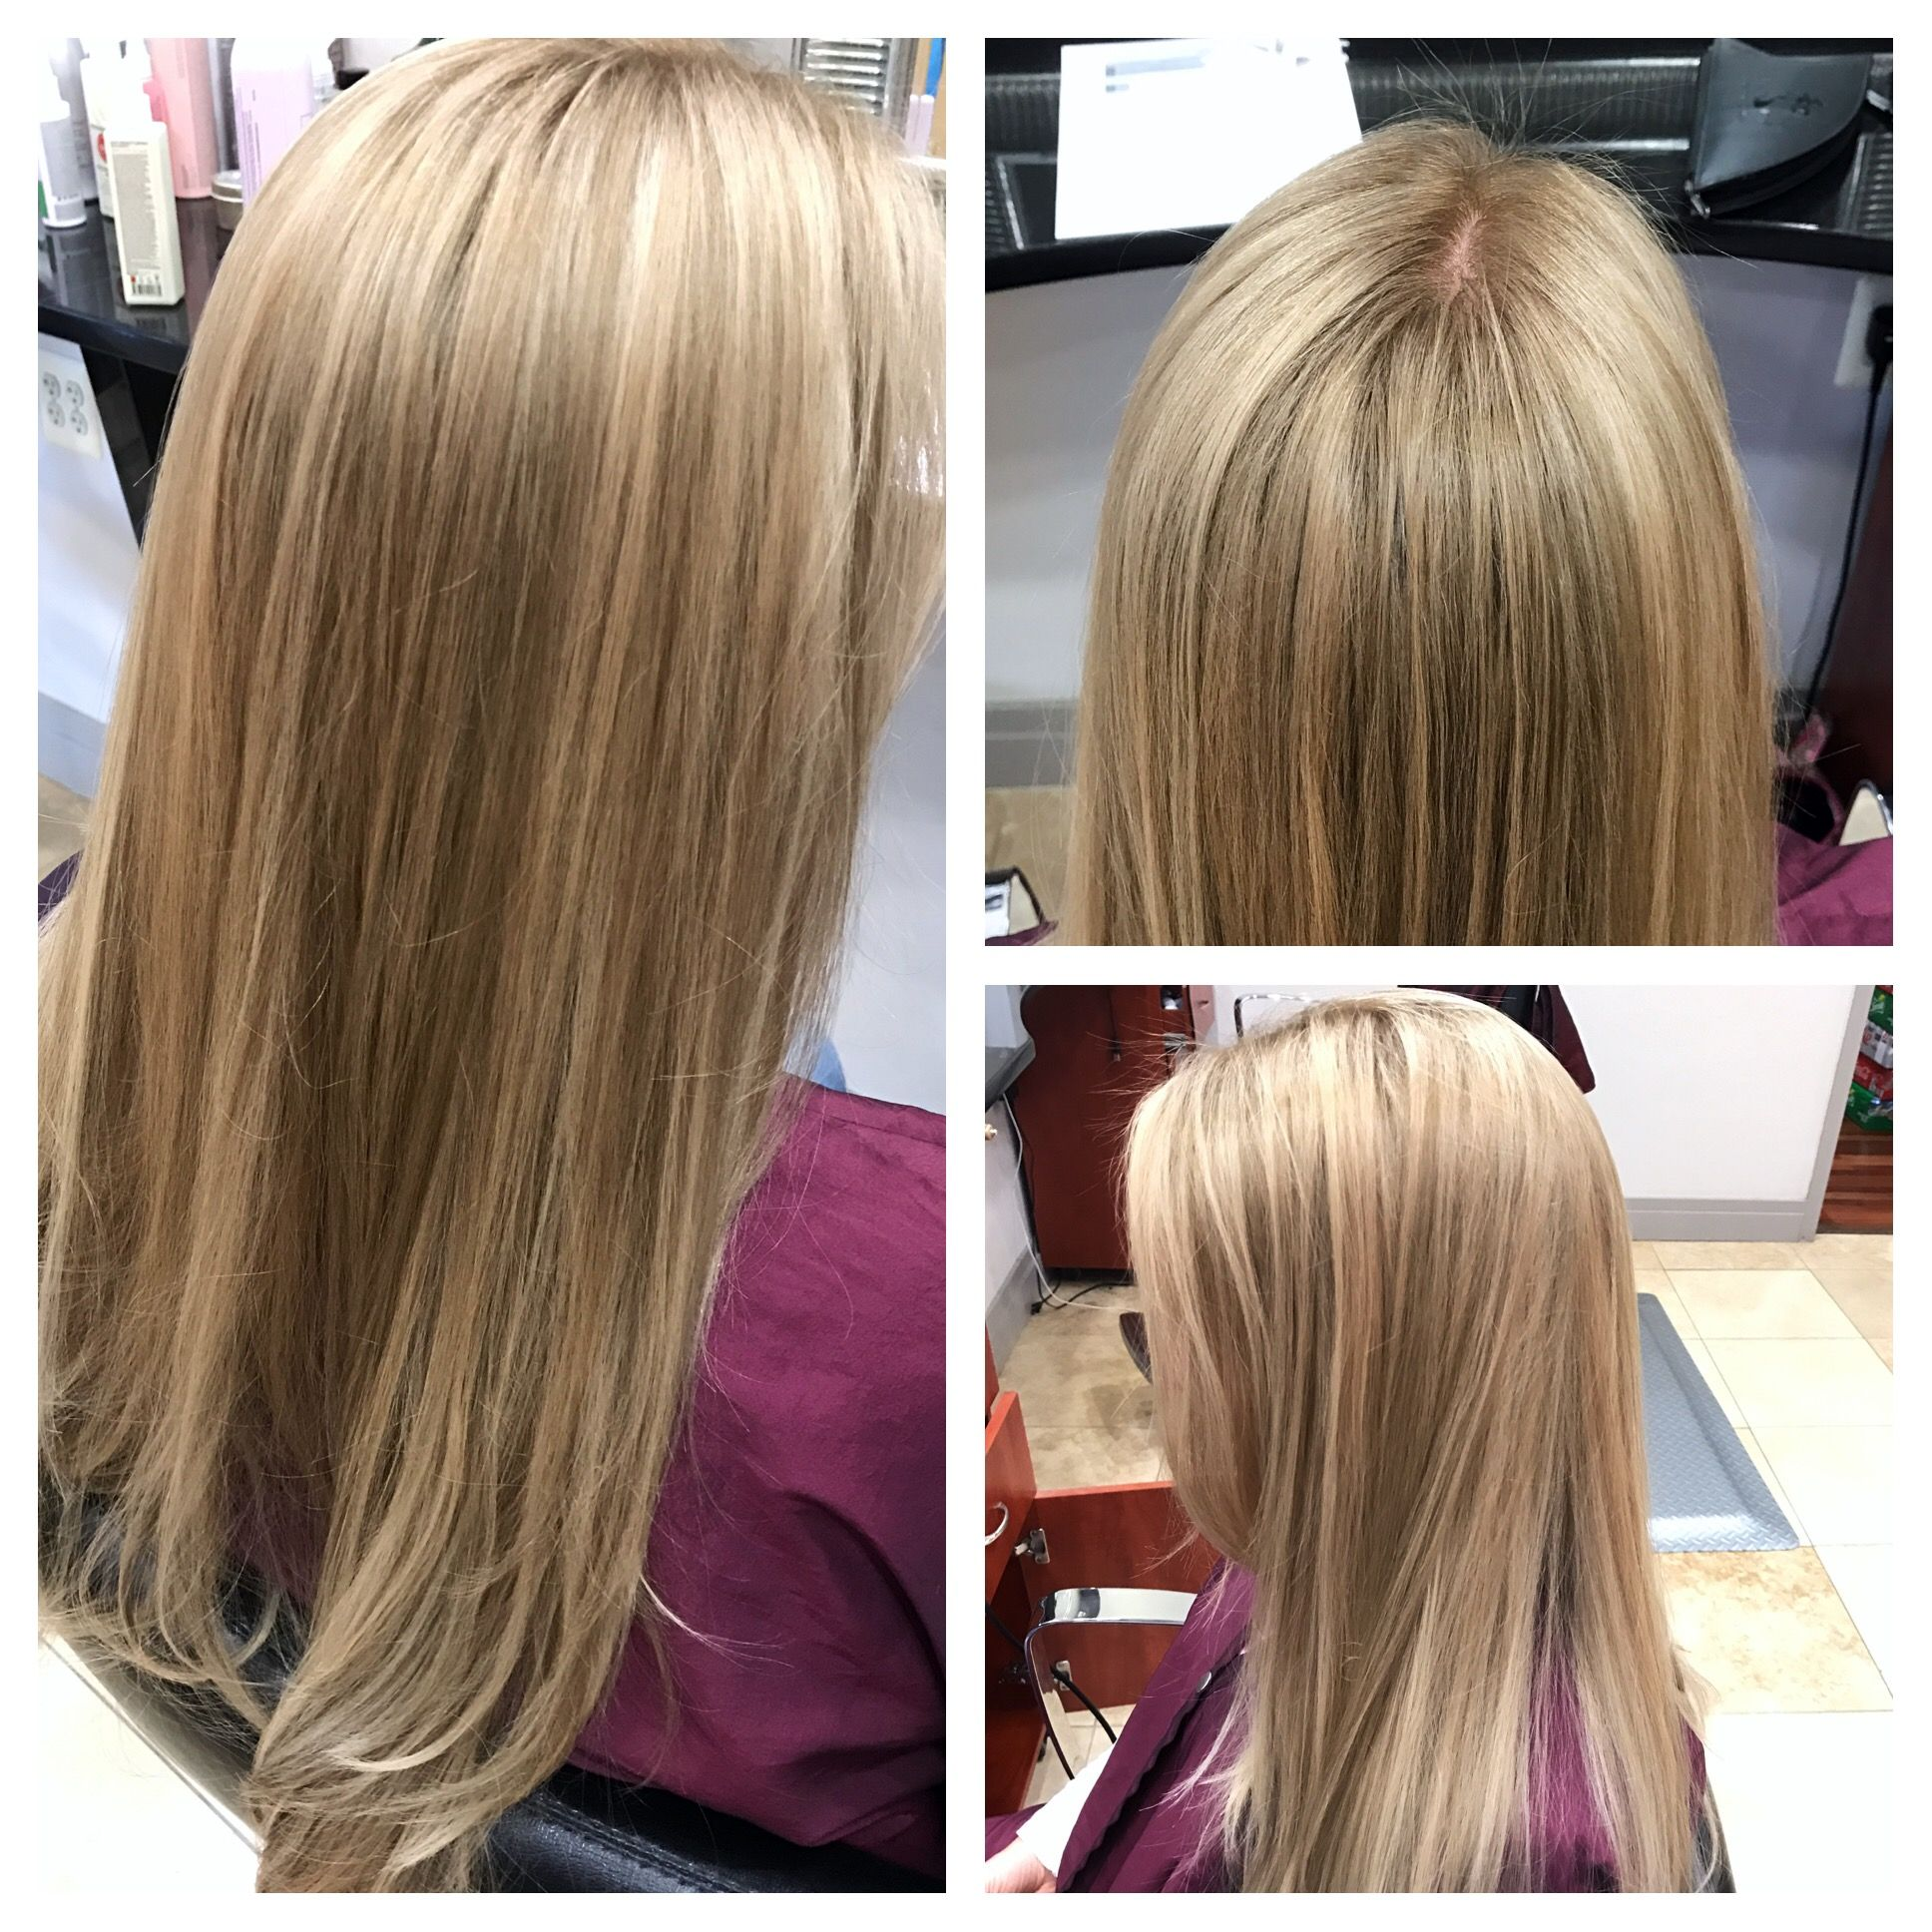 Get Rid Of That Yellow Blonde And Add Depth With A Simple Toner - The look hair salon